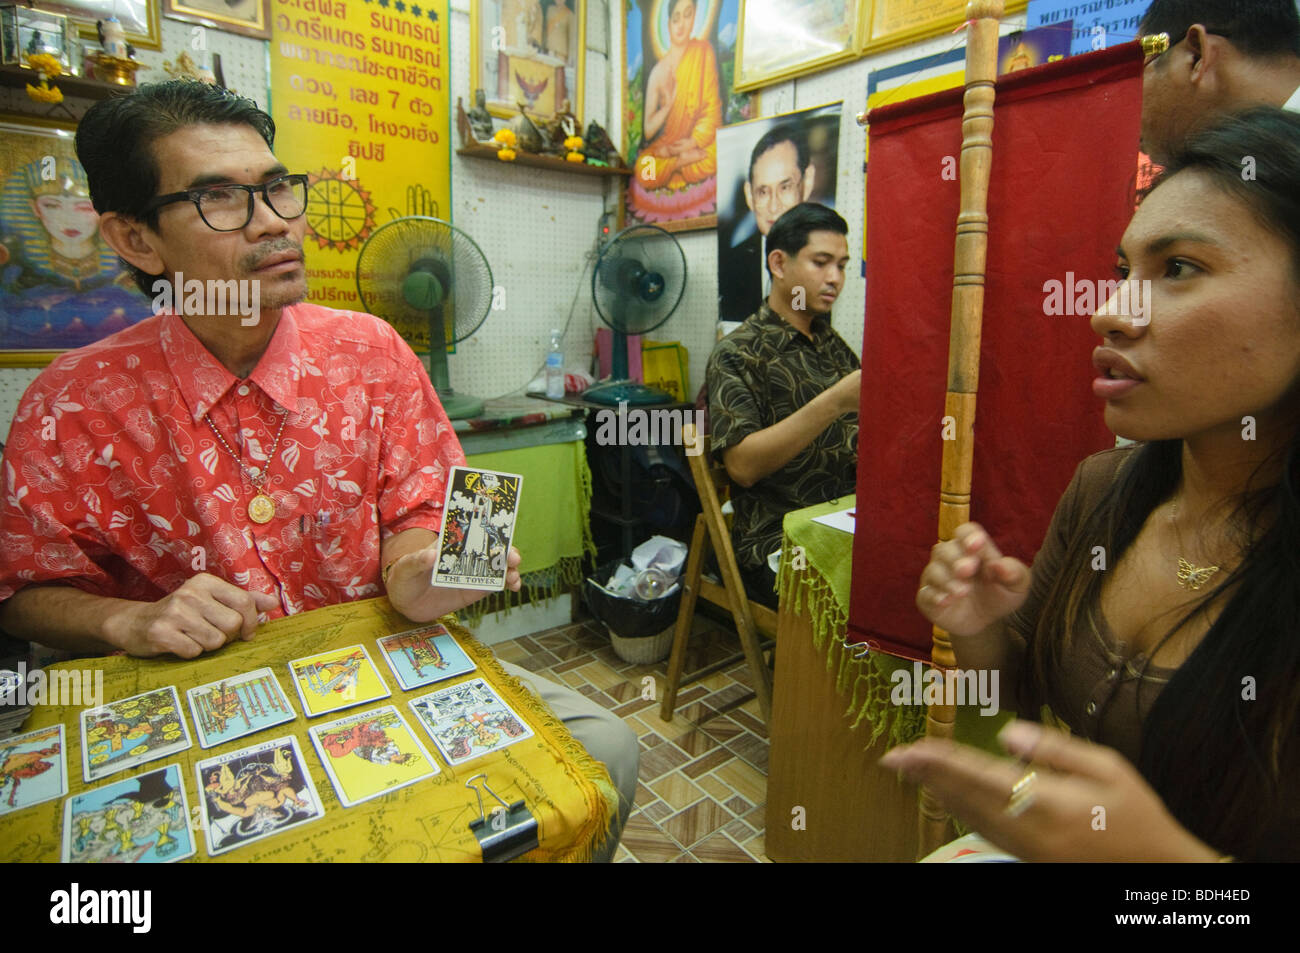 fortune teller in Bangkok Thailand giving a tarot card reading - Stock Image